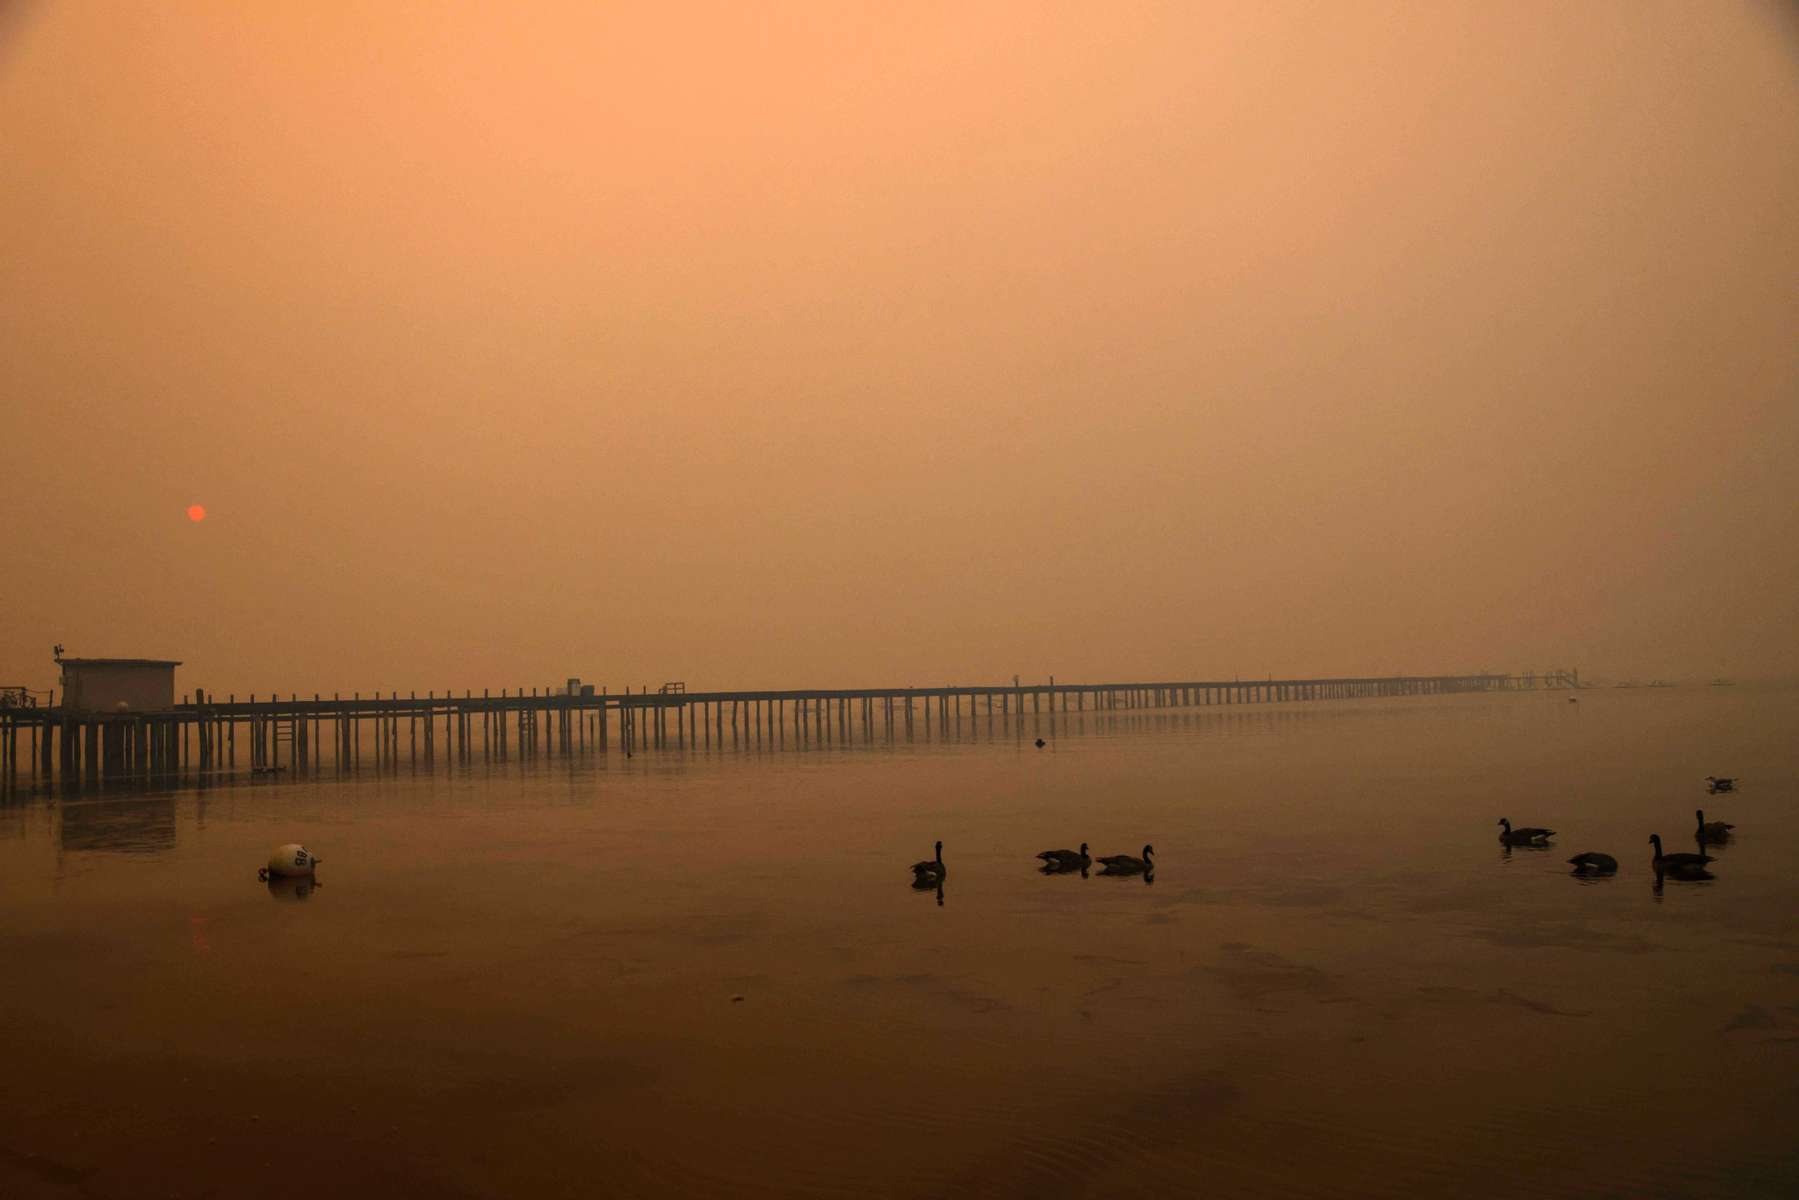 Smoke is seen on the Lake Tahoe as the Caldor fire rages near by on August 26, 2021, in South Lake Tahoe, California.The Caldor Fire has burned over 165,000 acres, destroyed over 660 structures and is currently 14 percent contained.